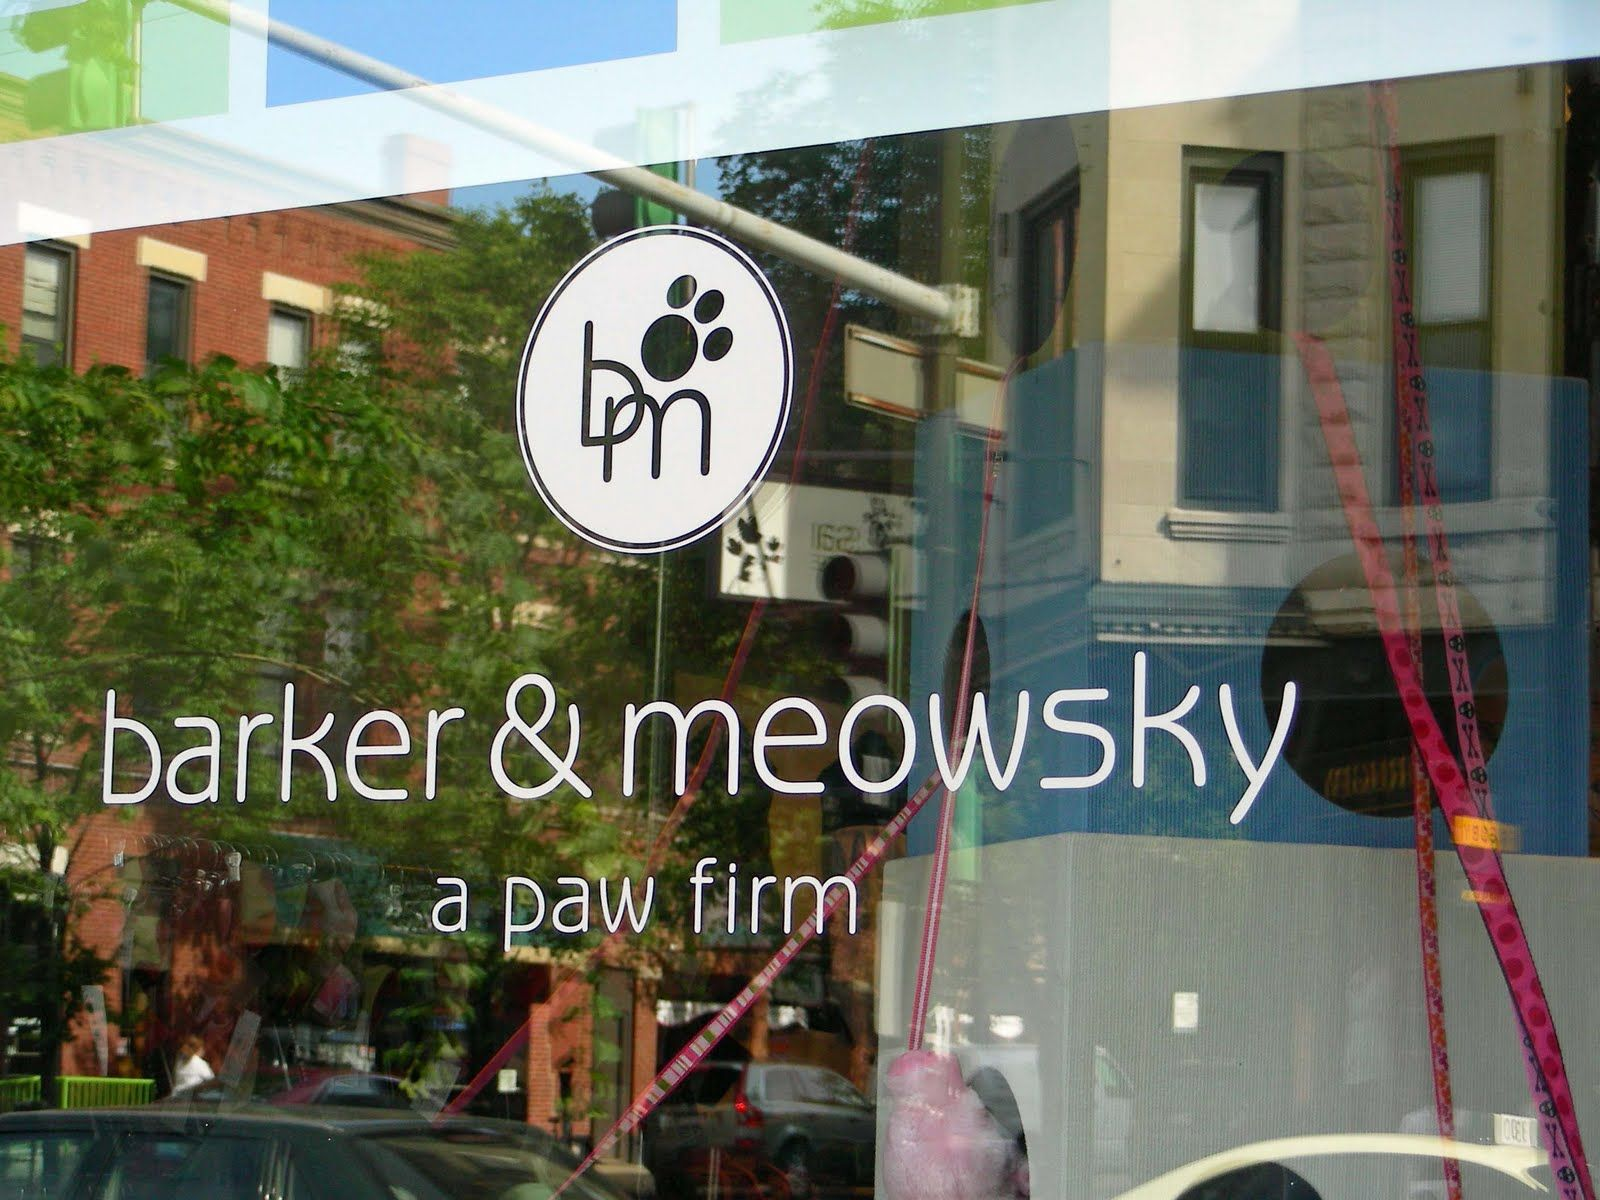 Barker & Meowsky - A Paw Firm  Great window and business name! Pet